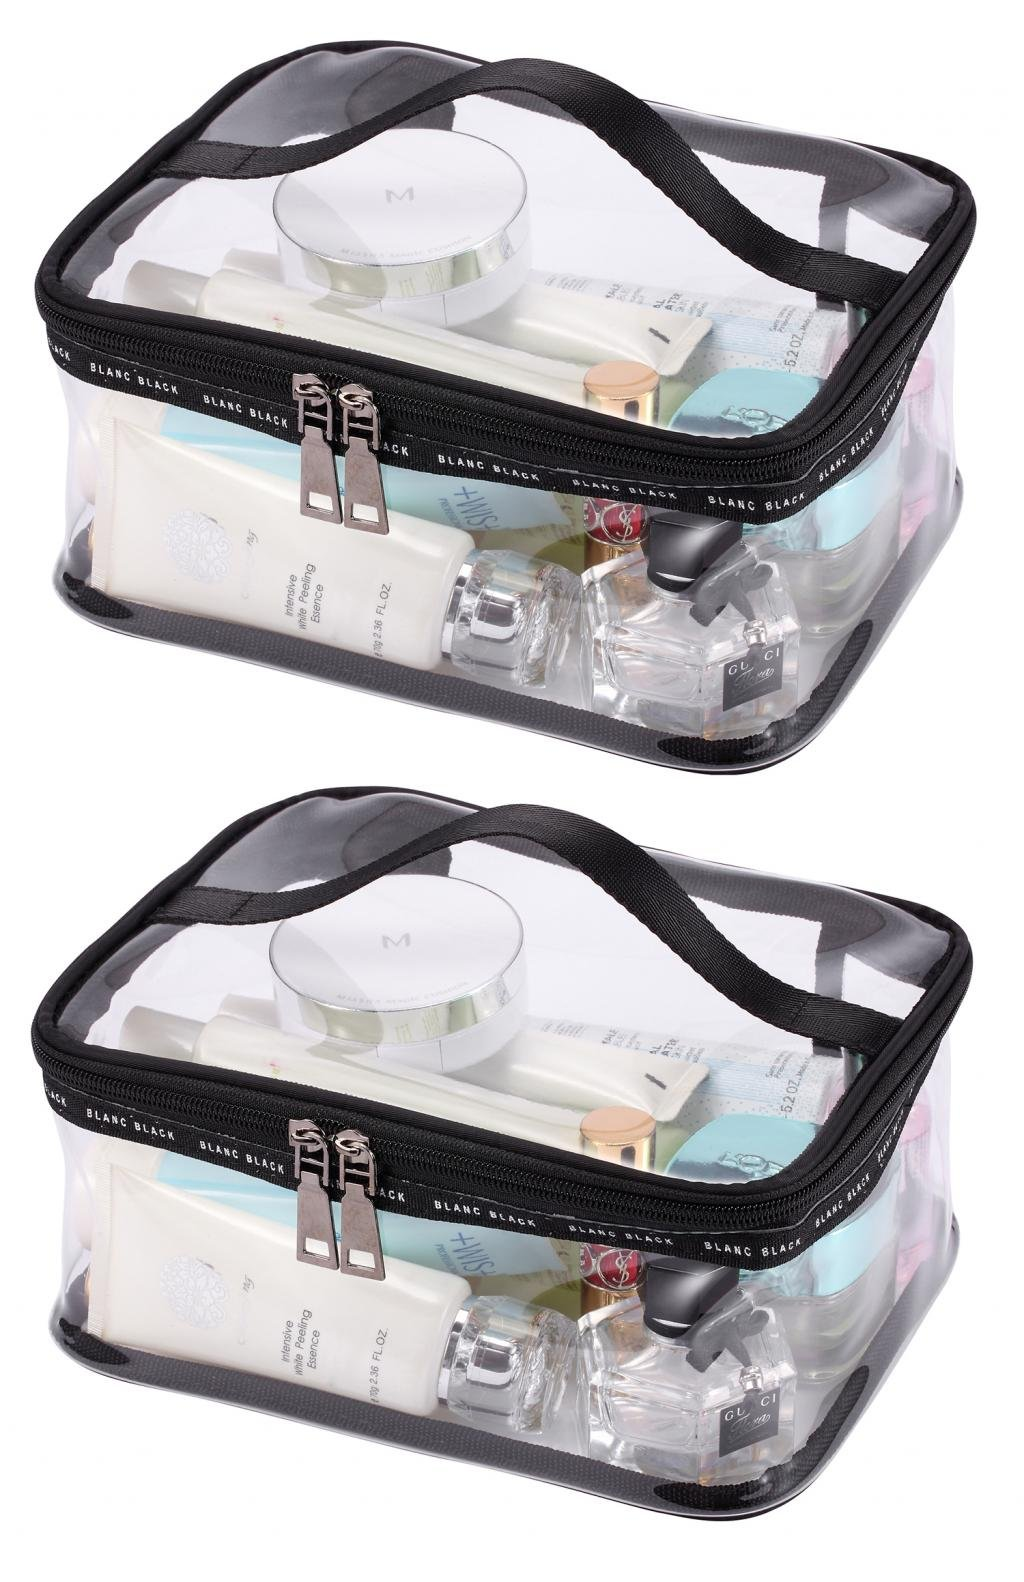 LOUISE MAELYS Portable Clear Makeup Bag Zipper Waterproof Transparent Travel Storage Pouch Cosmetic Toiletry Bag With Handle by Louise Maelys